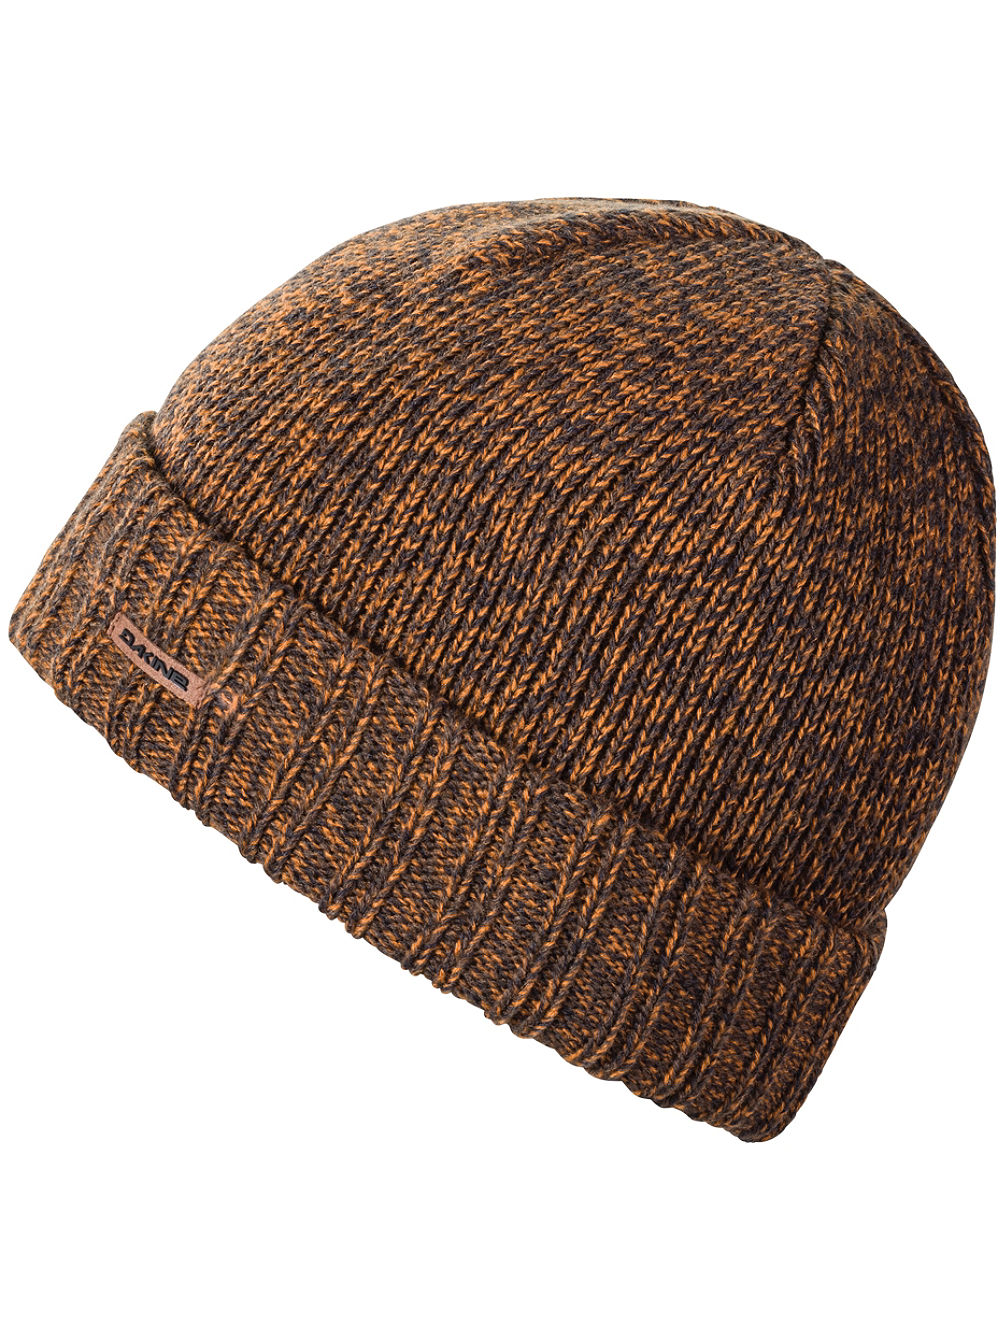 Harvey Gorro